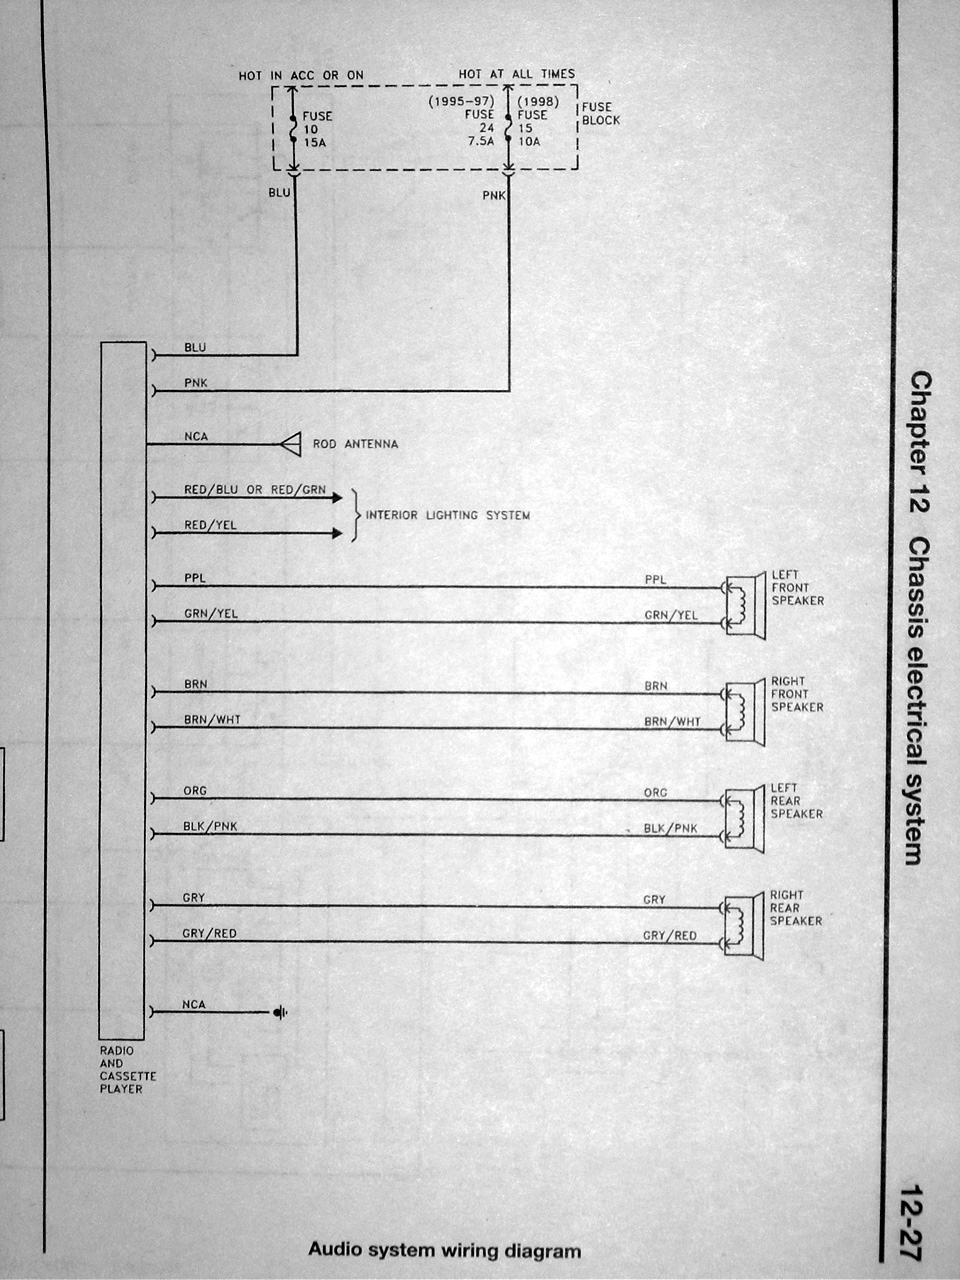 DSC01849 wiring diagram thread *useful info* nissan forum 2006 nissan frontier stereo wiring diagram at soozxer.org